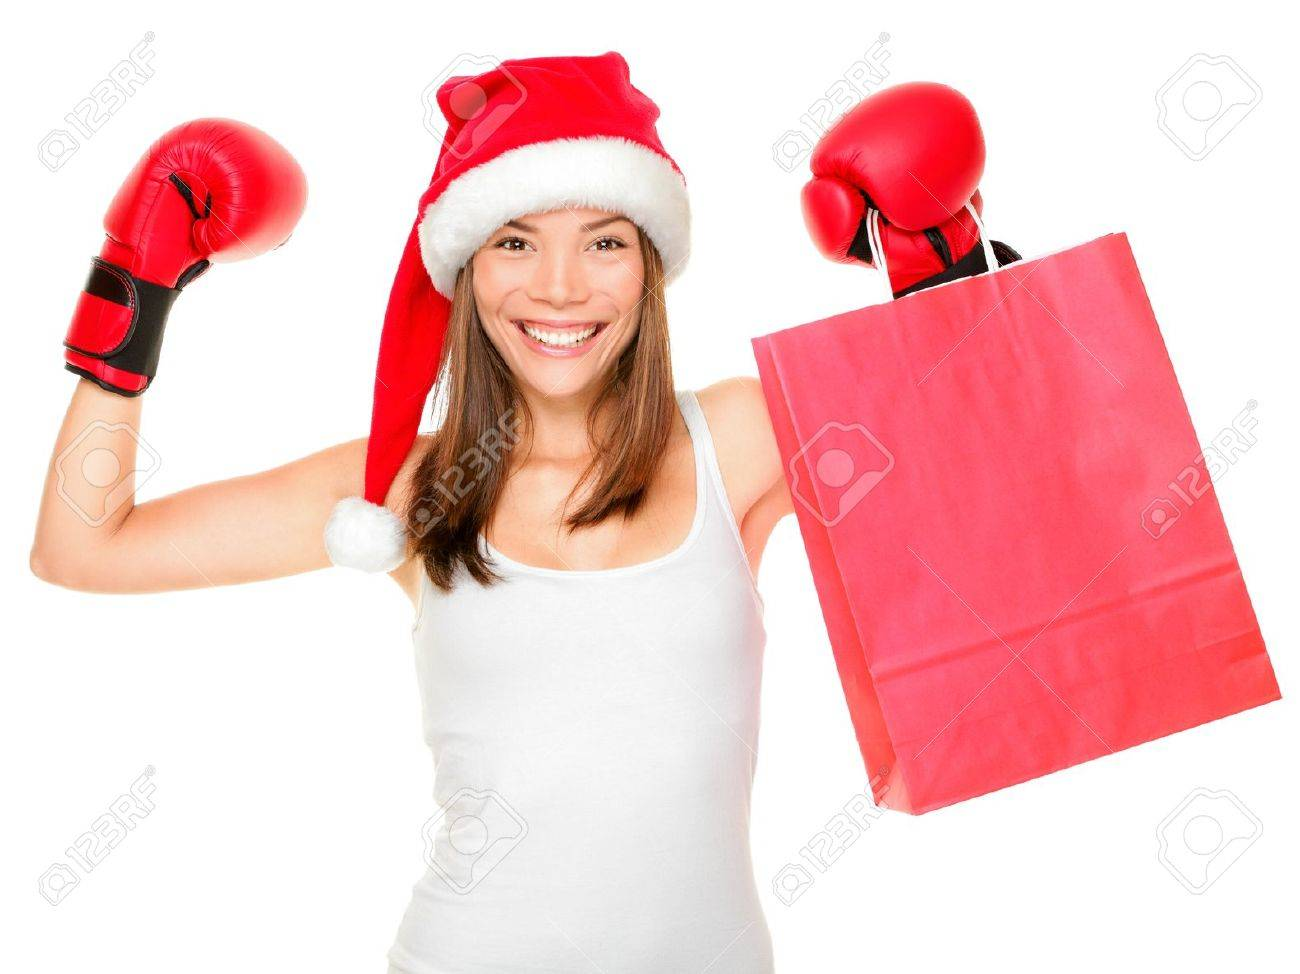 Christmas shopping boxing day concept with woman holding shopping bag wearing santa hat and boxing gloves. Funny fresh image of beautiful mixed race Asian Caucasian female model isolated on white background. Stock Photo - 10914490